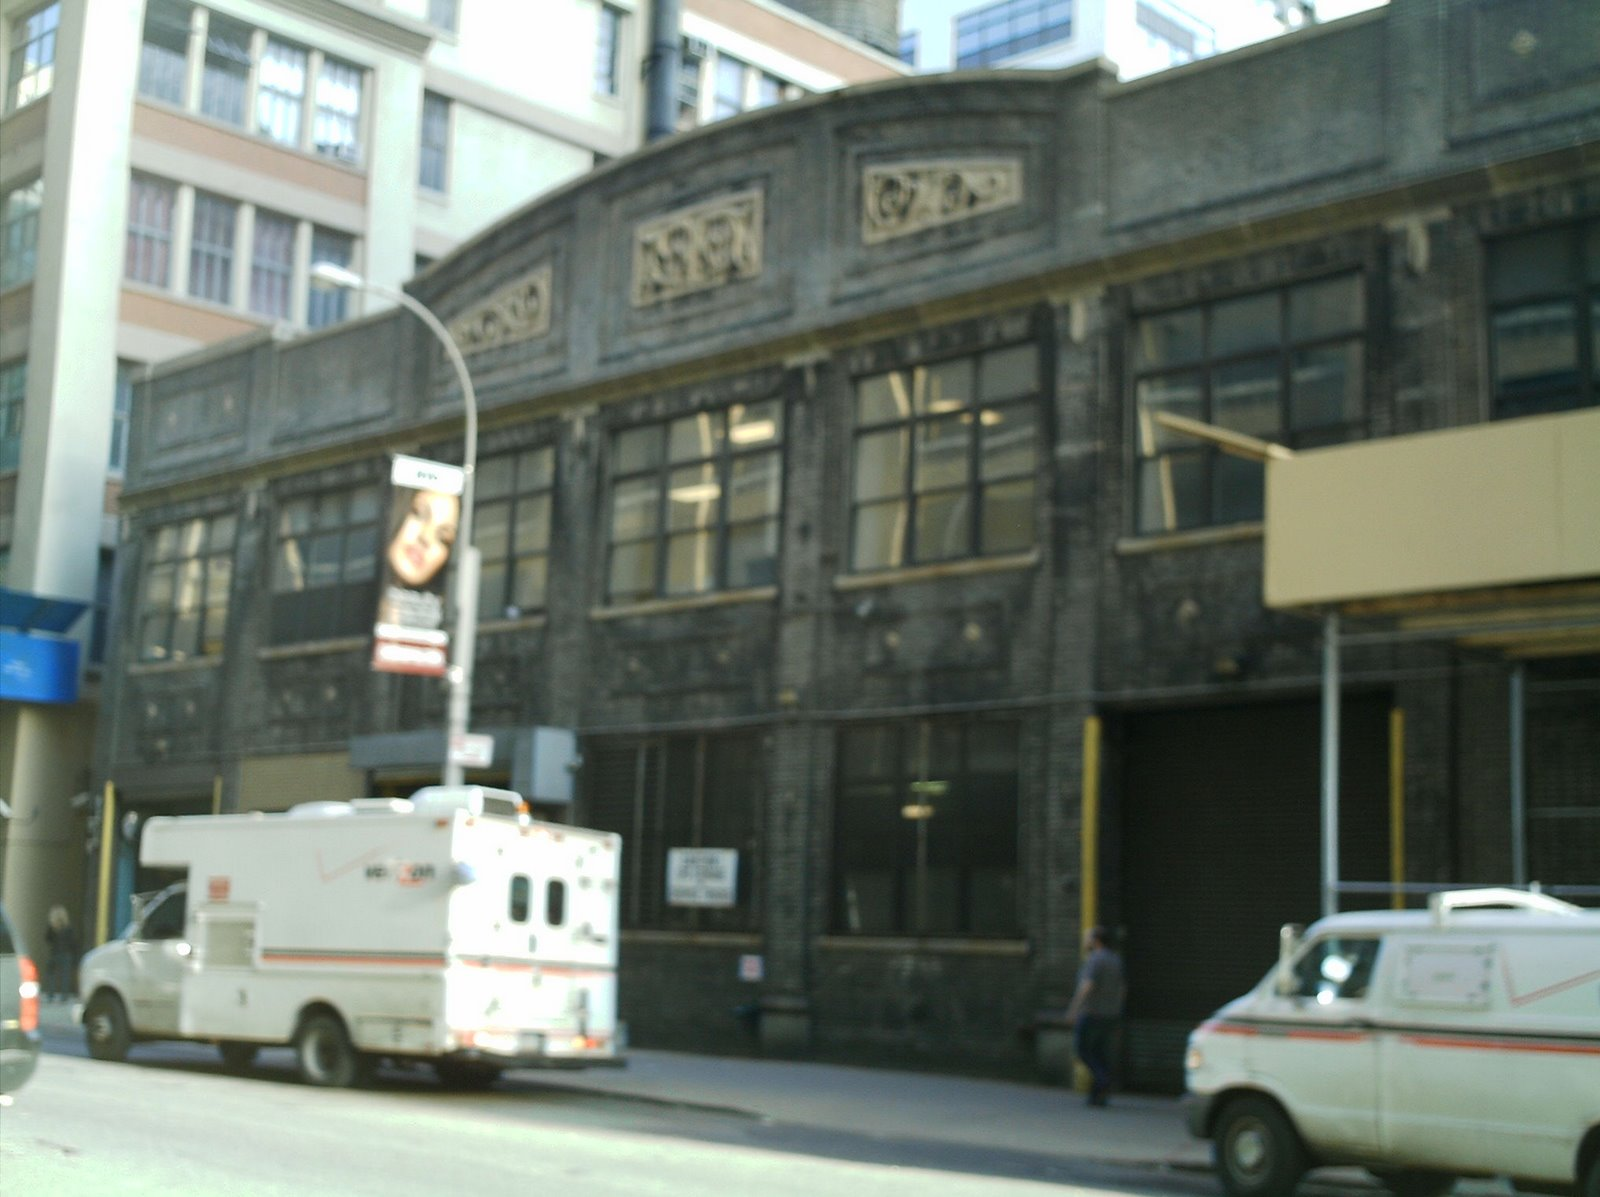 Photo Taken April 2007